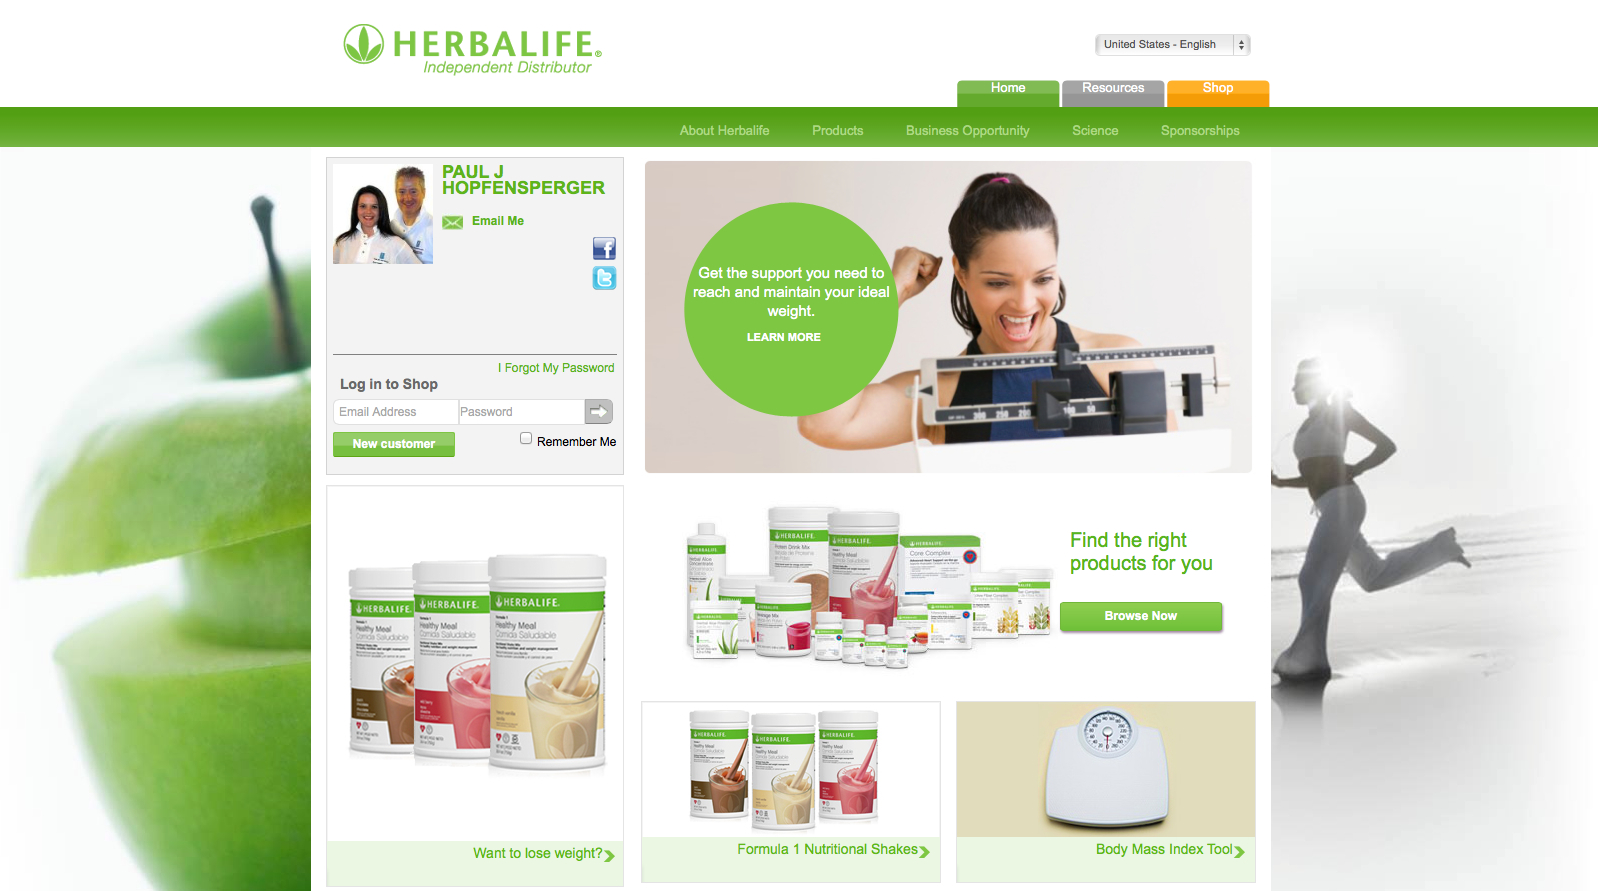 Visit our Herbalife USA Webshop by clicking here...